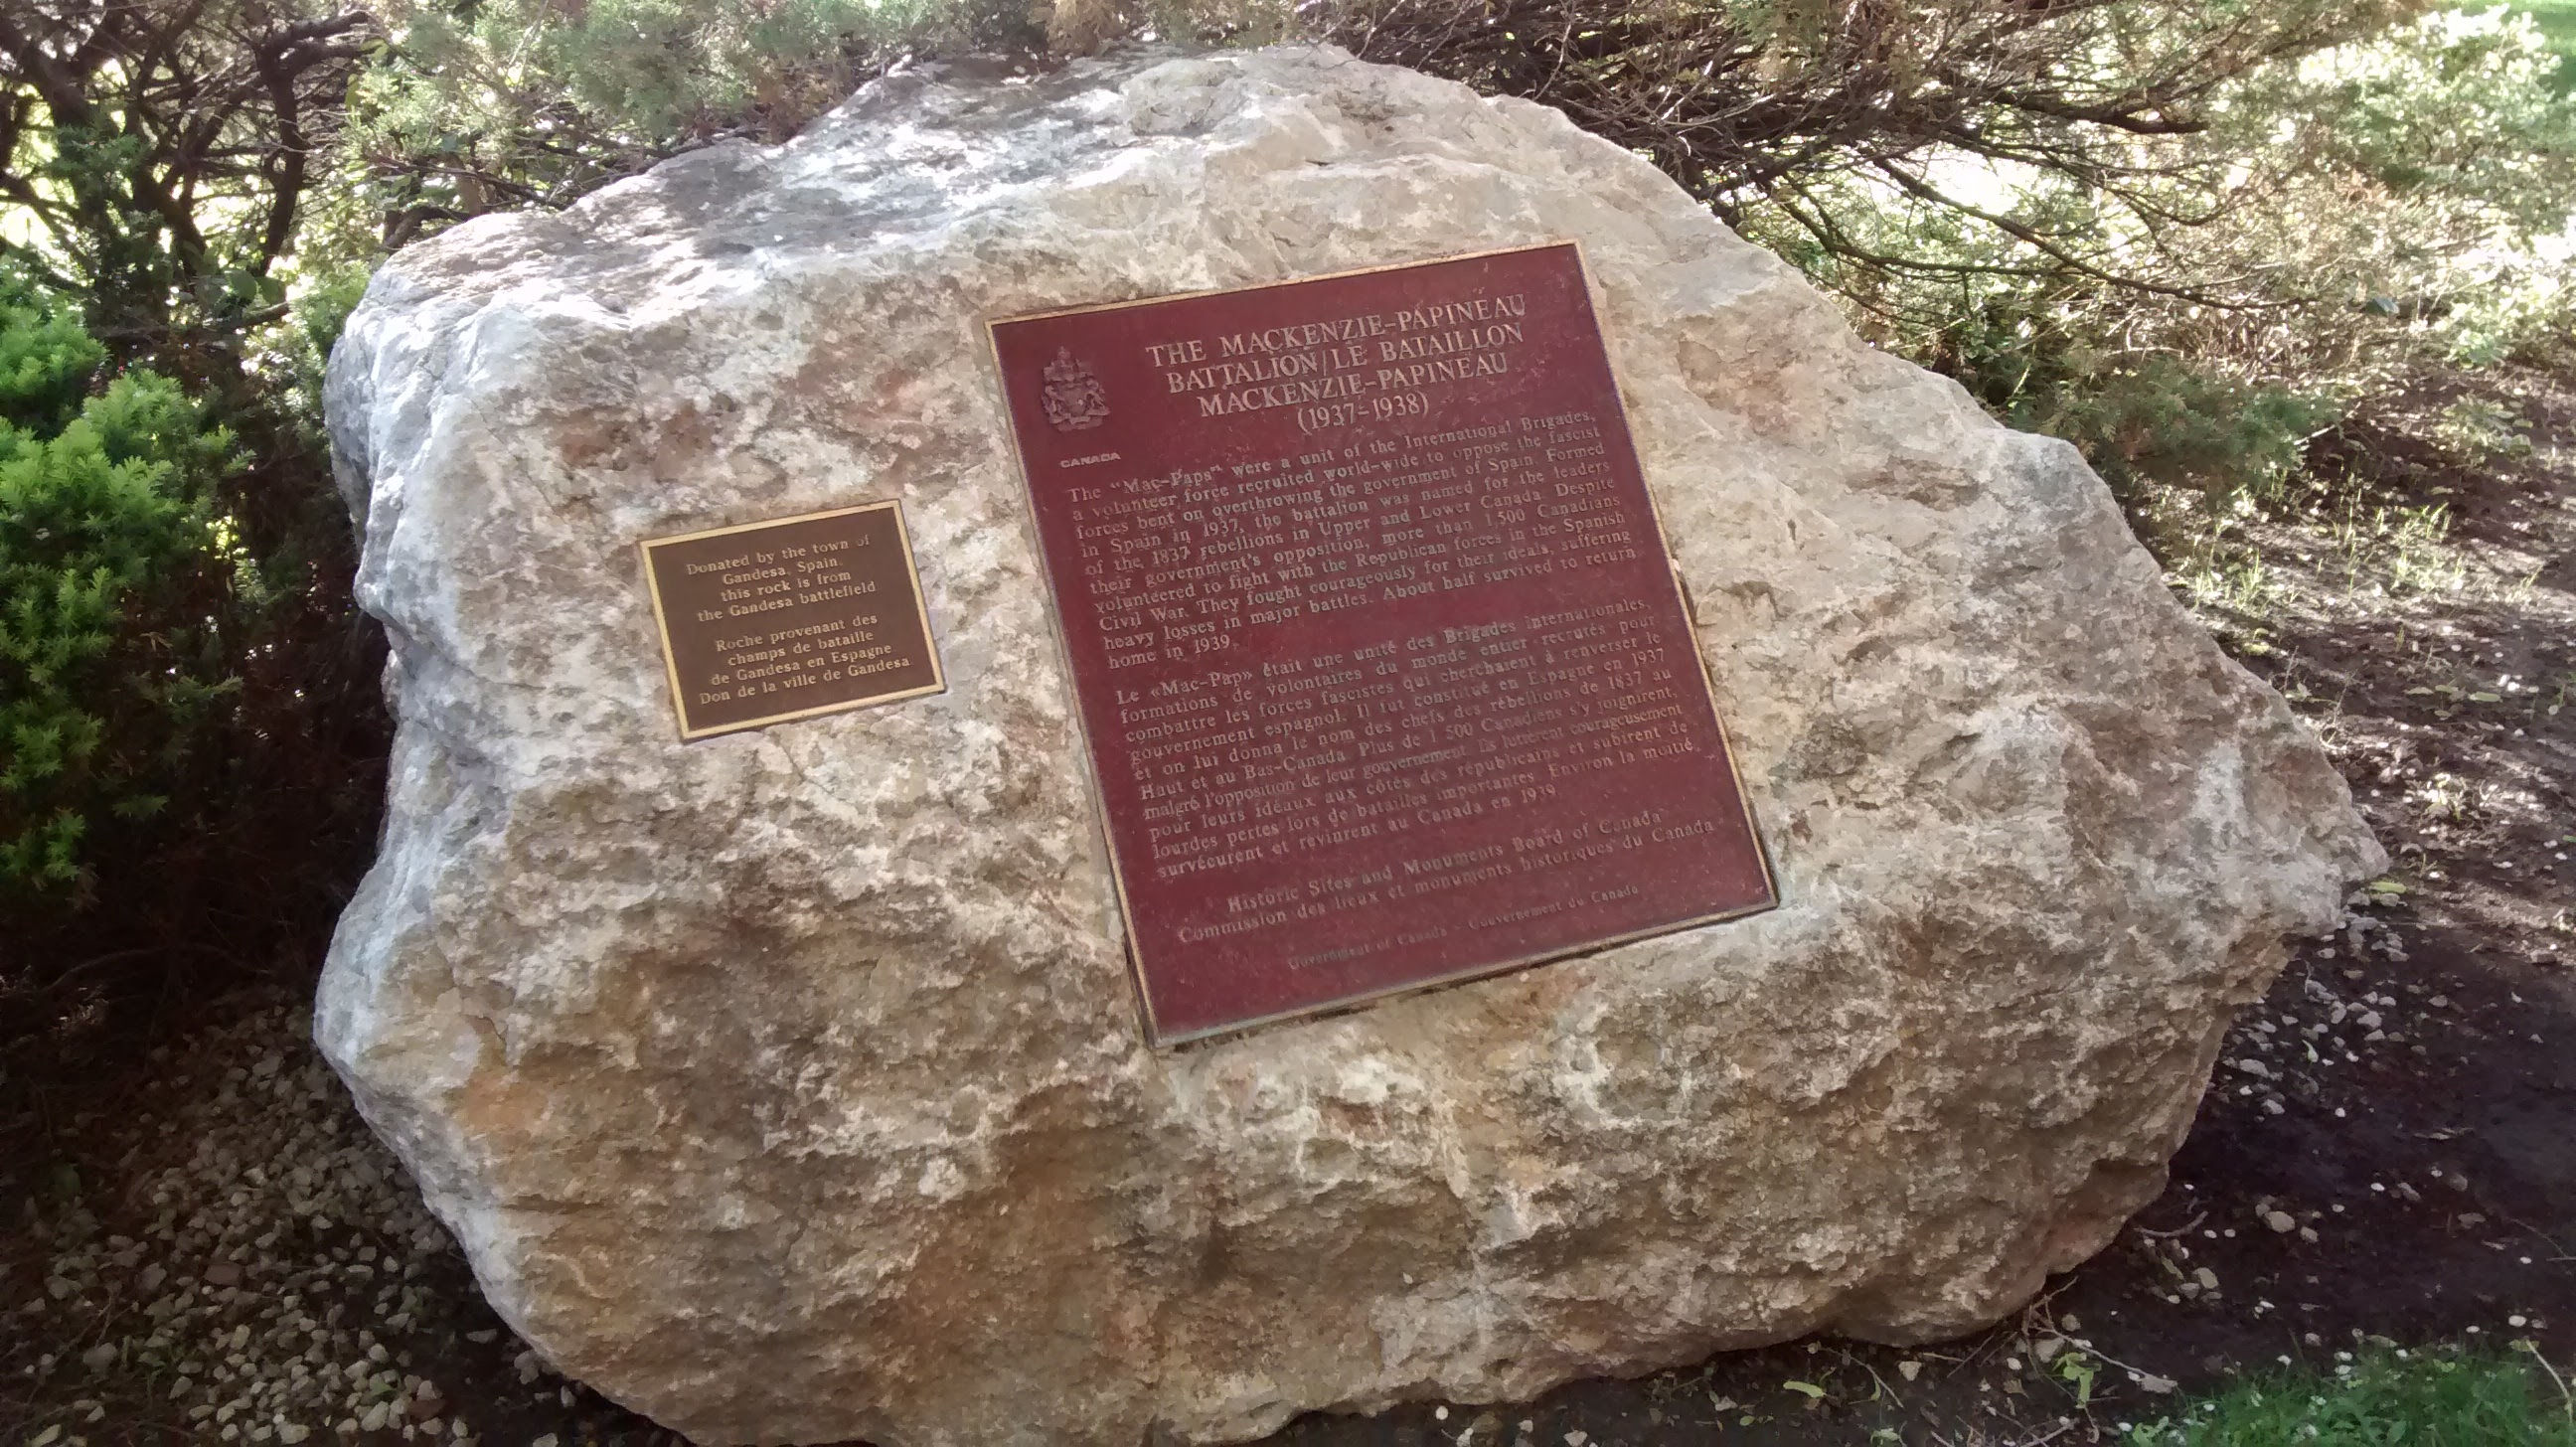 Photo of the Gandesa rock memorial: a boulder with two plaques explaining the momument.